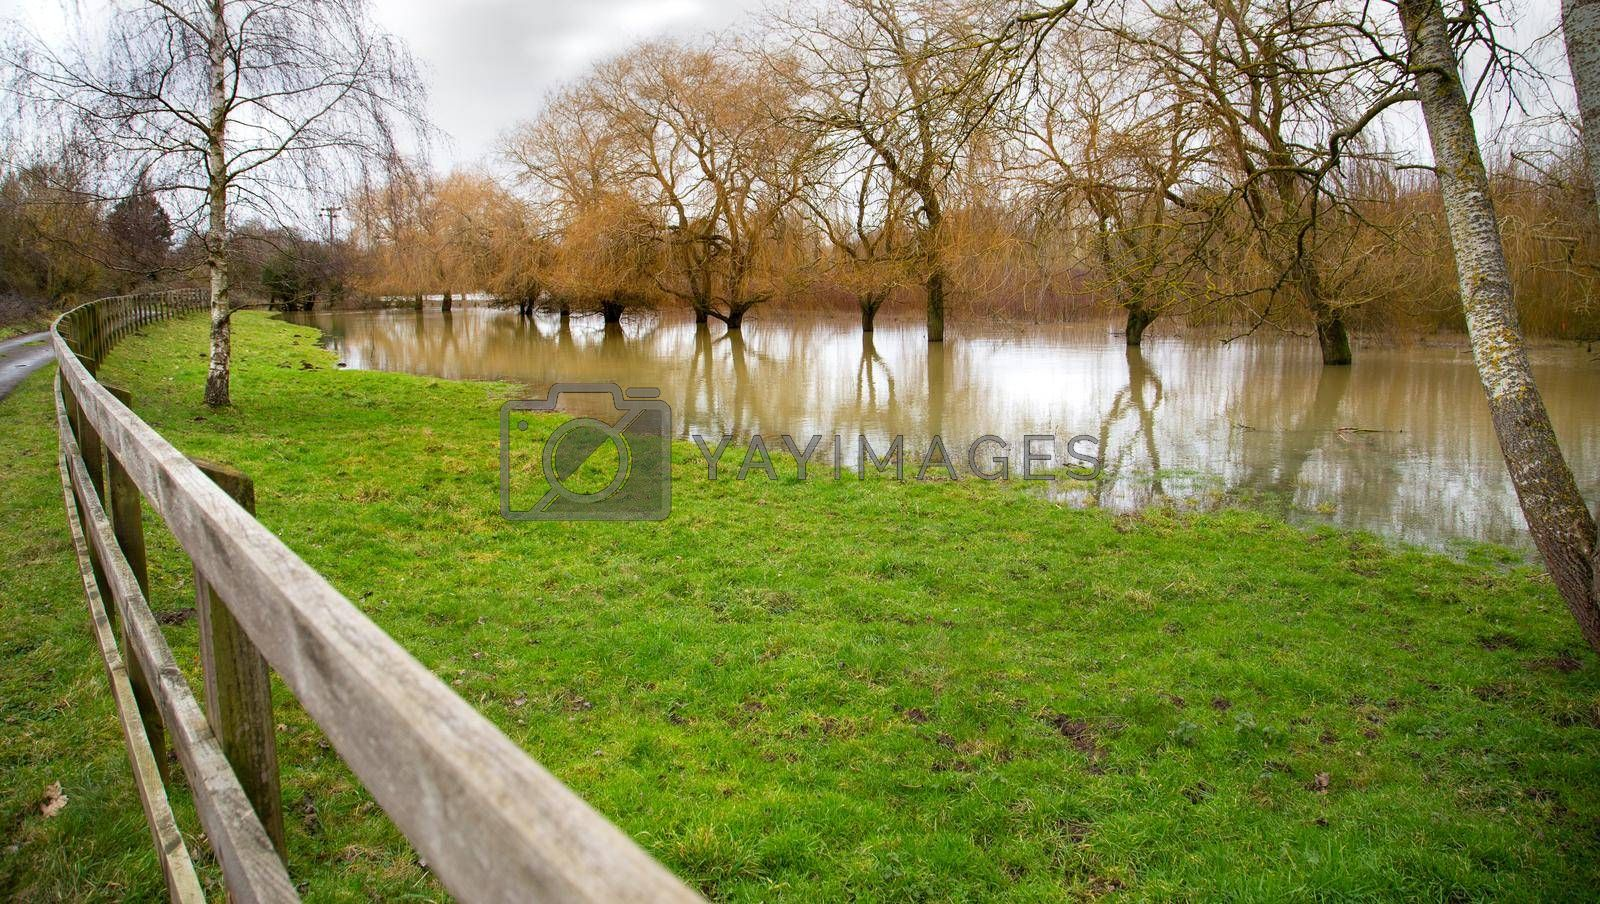 Flooded filed, high water, Farm fence, green grass, flooded filed with trees and water reflection. Global warming disaster. UK, England, Suffolk 2021